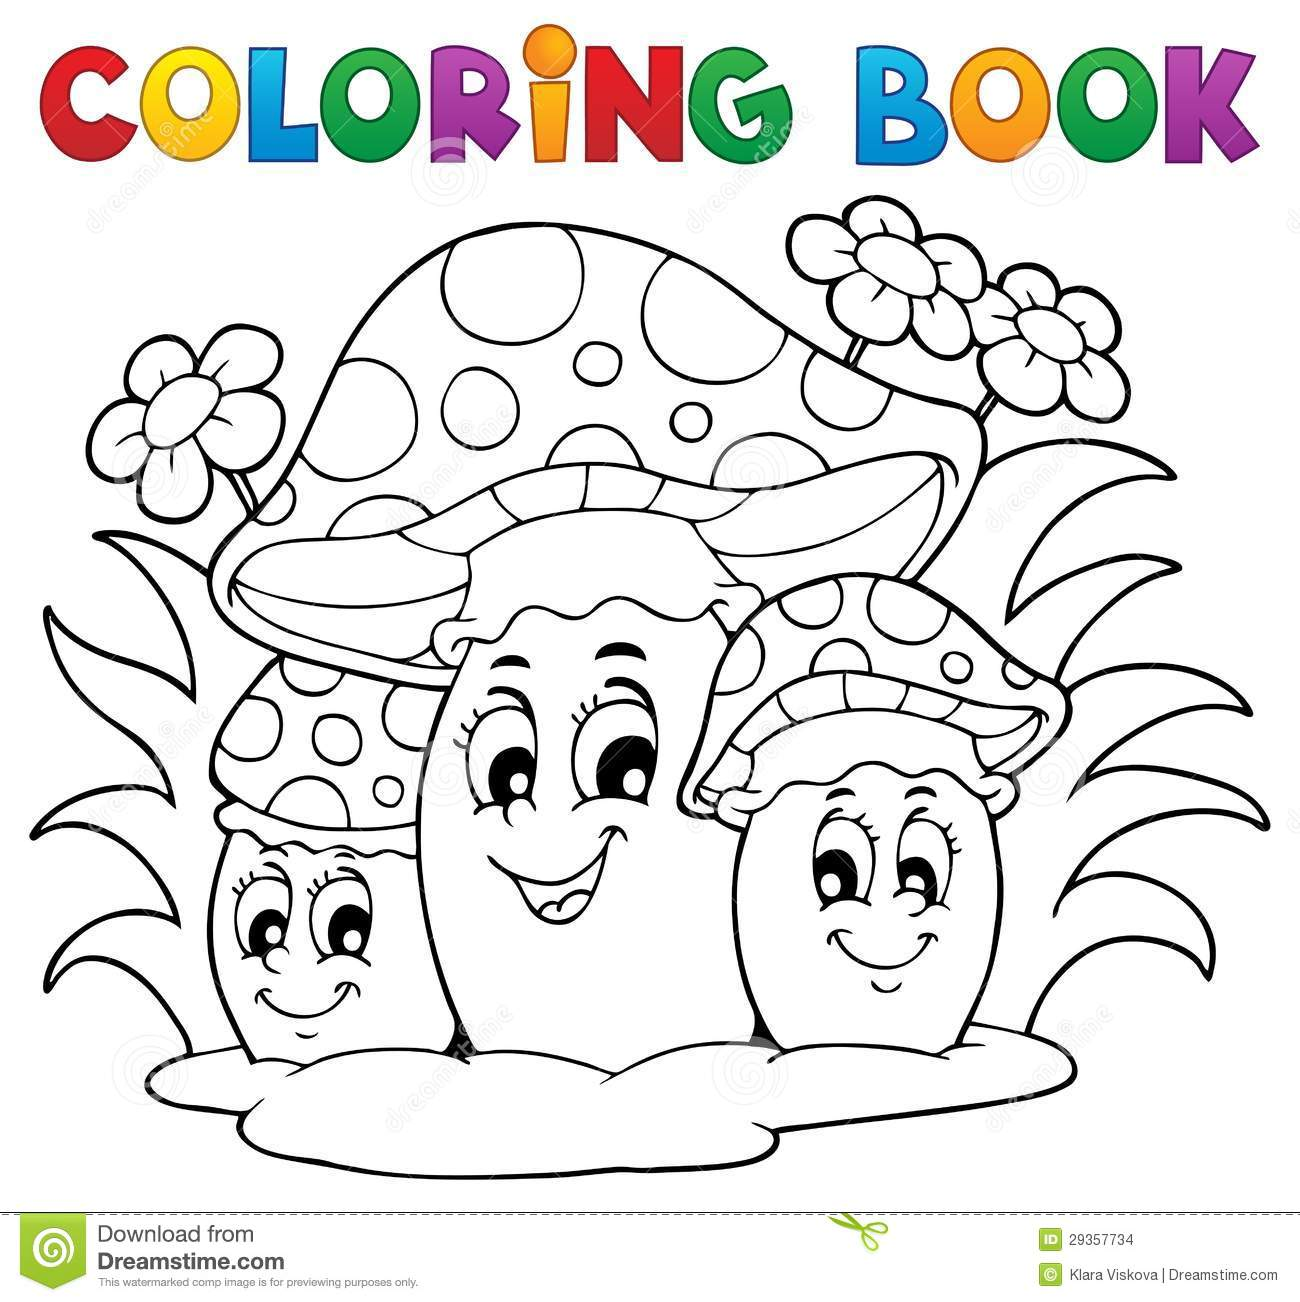 coloring book mushroom drawing looking - Coloringbook